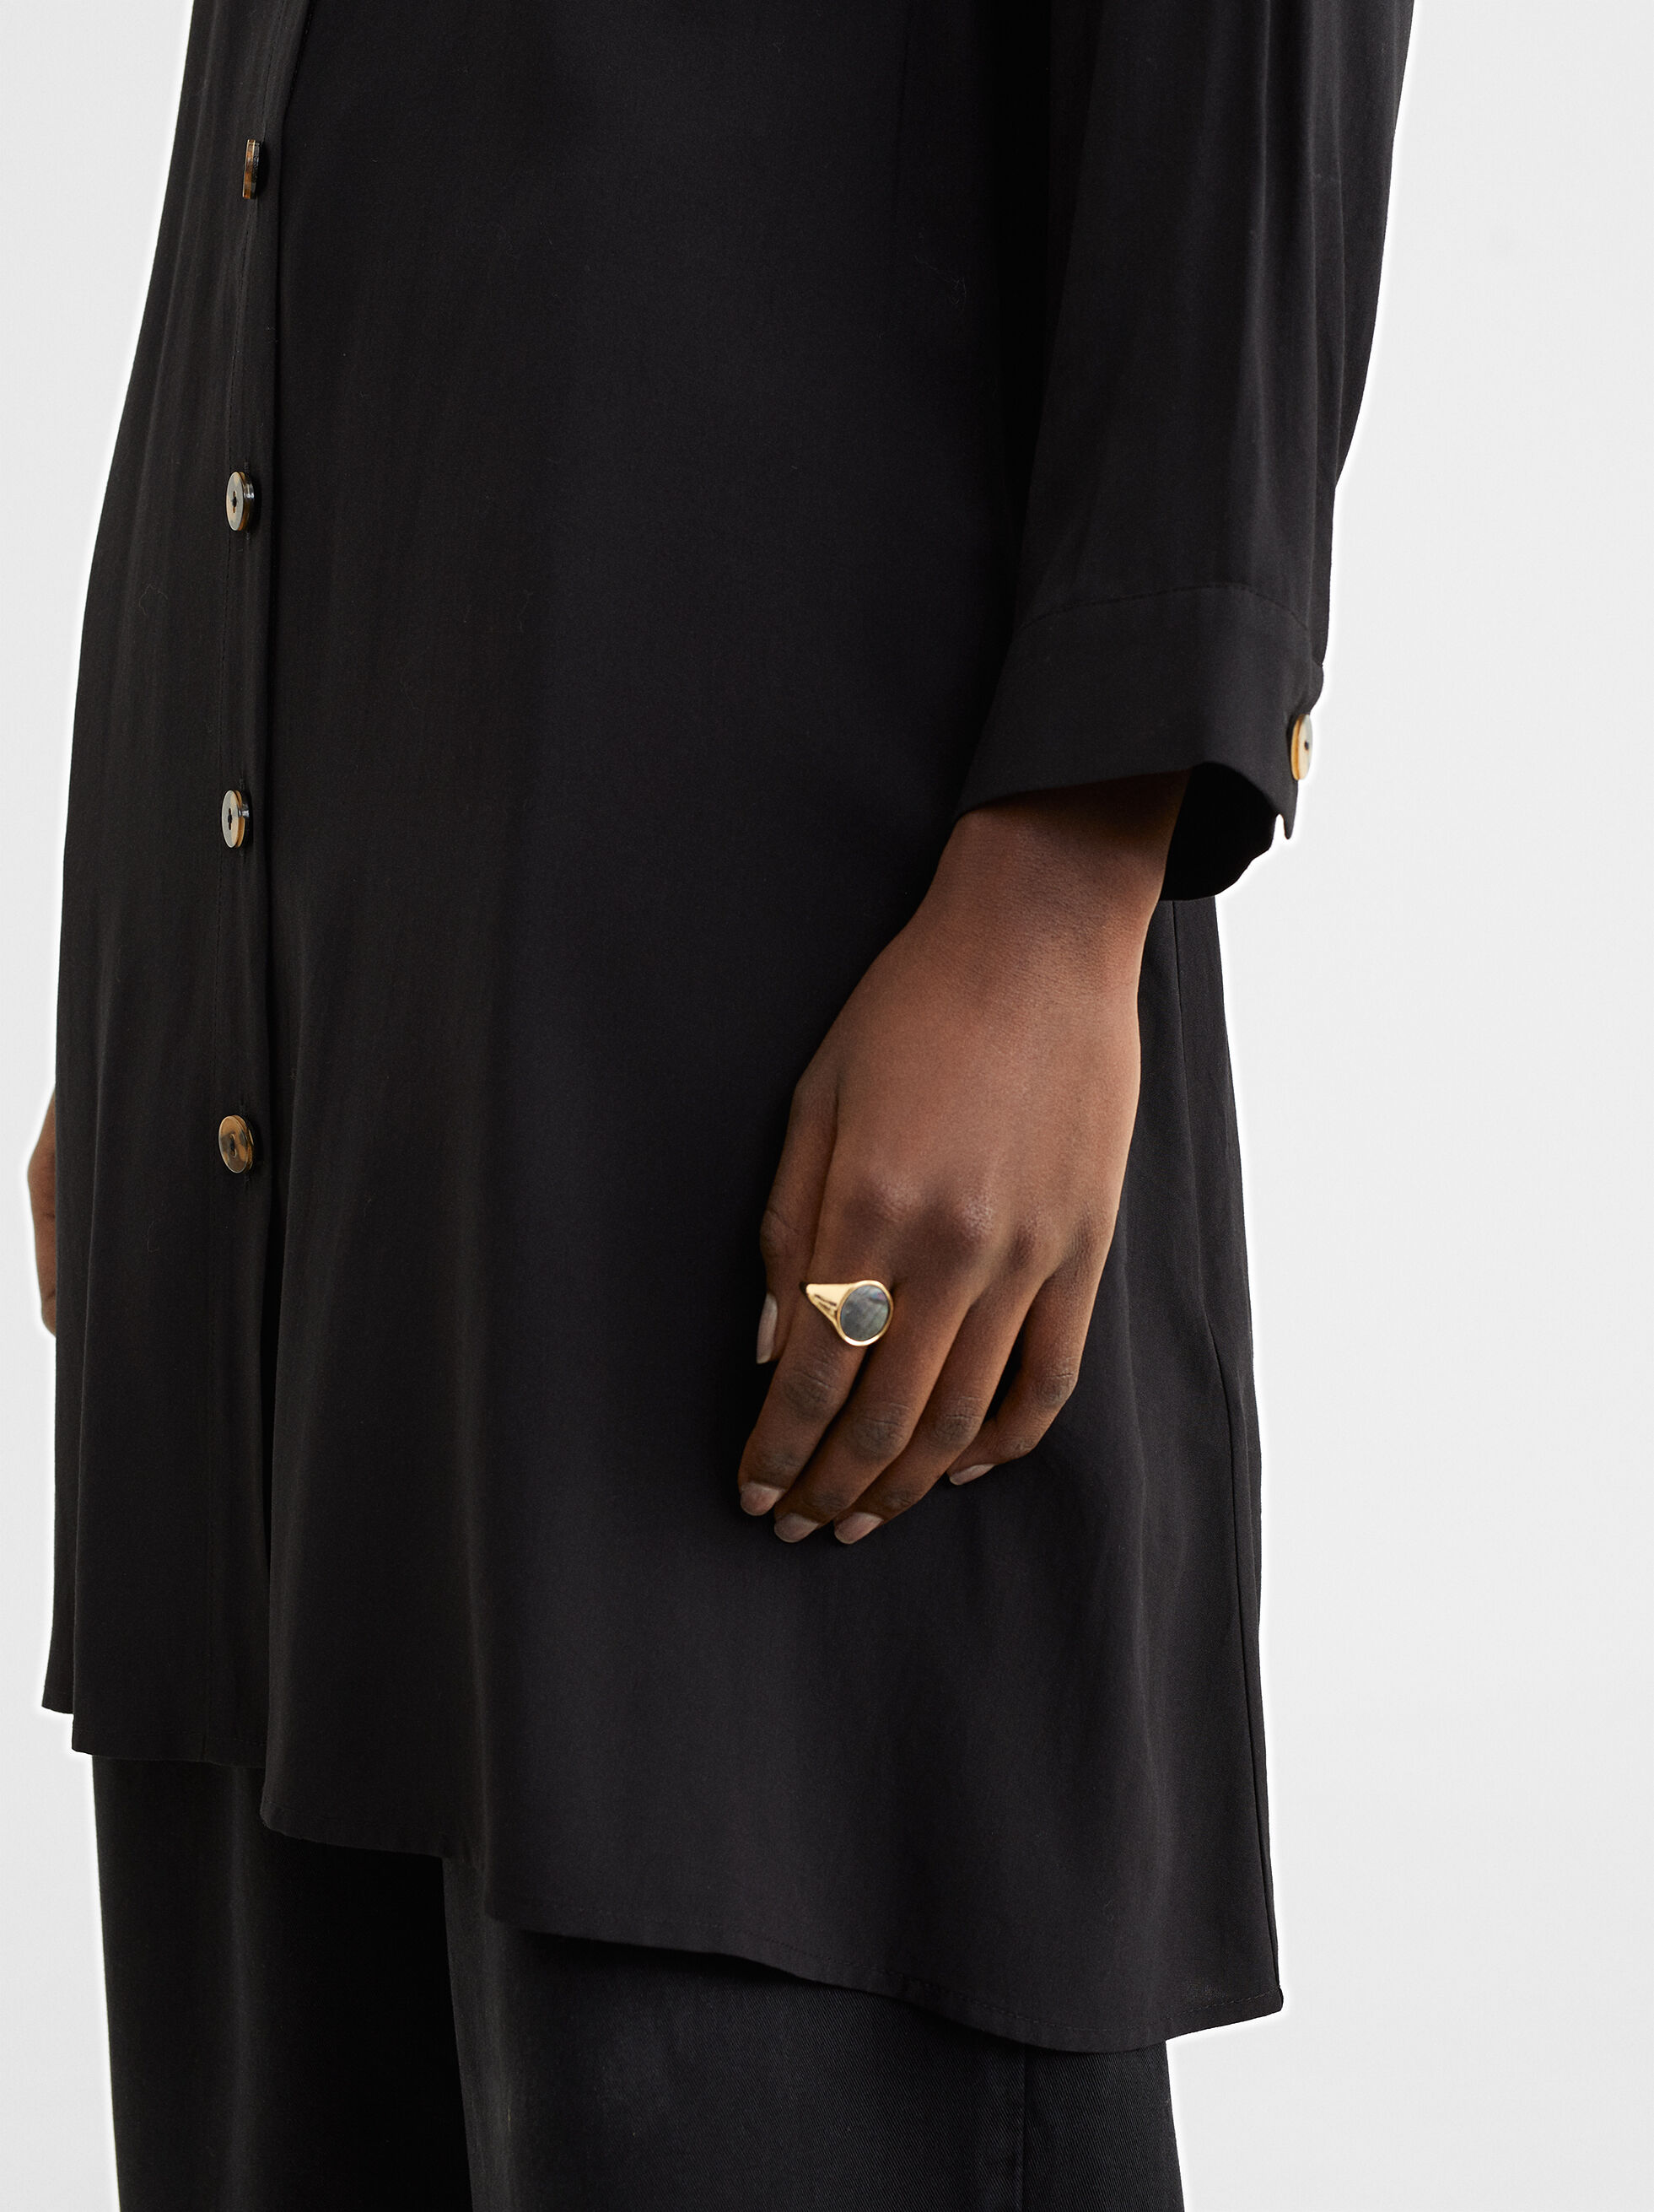 Shirt Dress With Pocket, Black, hi-res